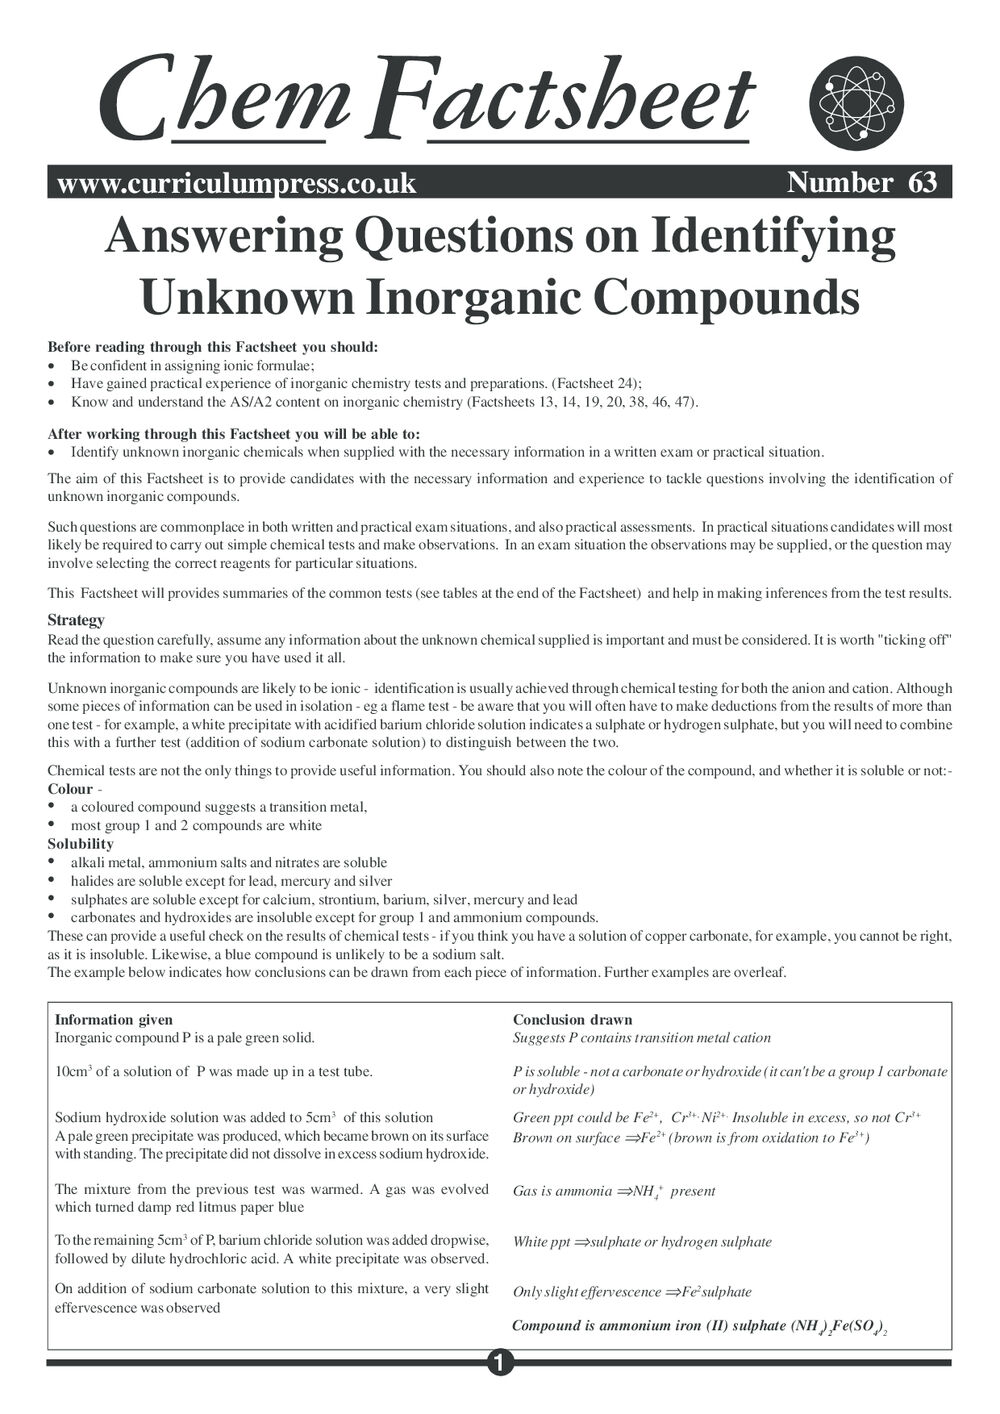 Answering Questions on Identifying Unknown Inorganic Compounds